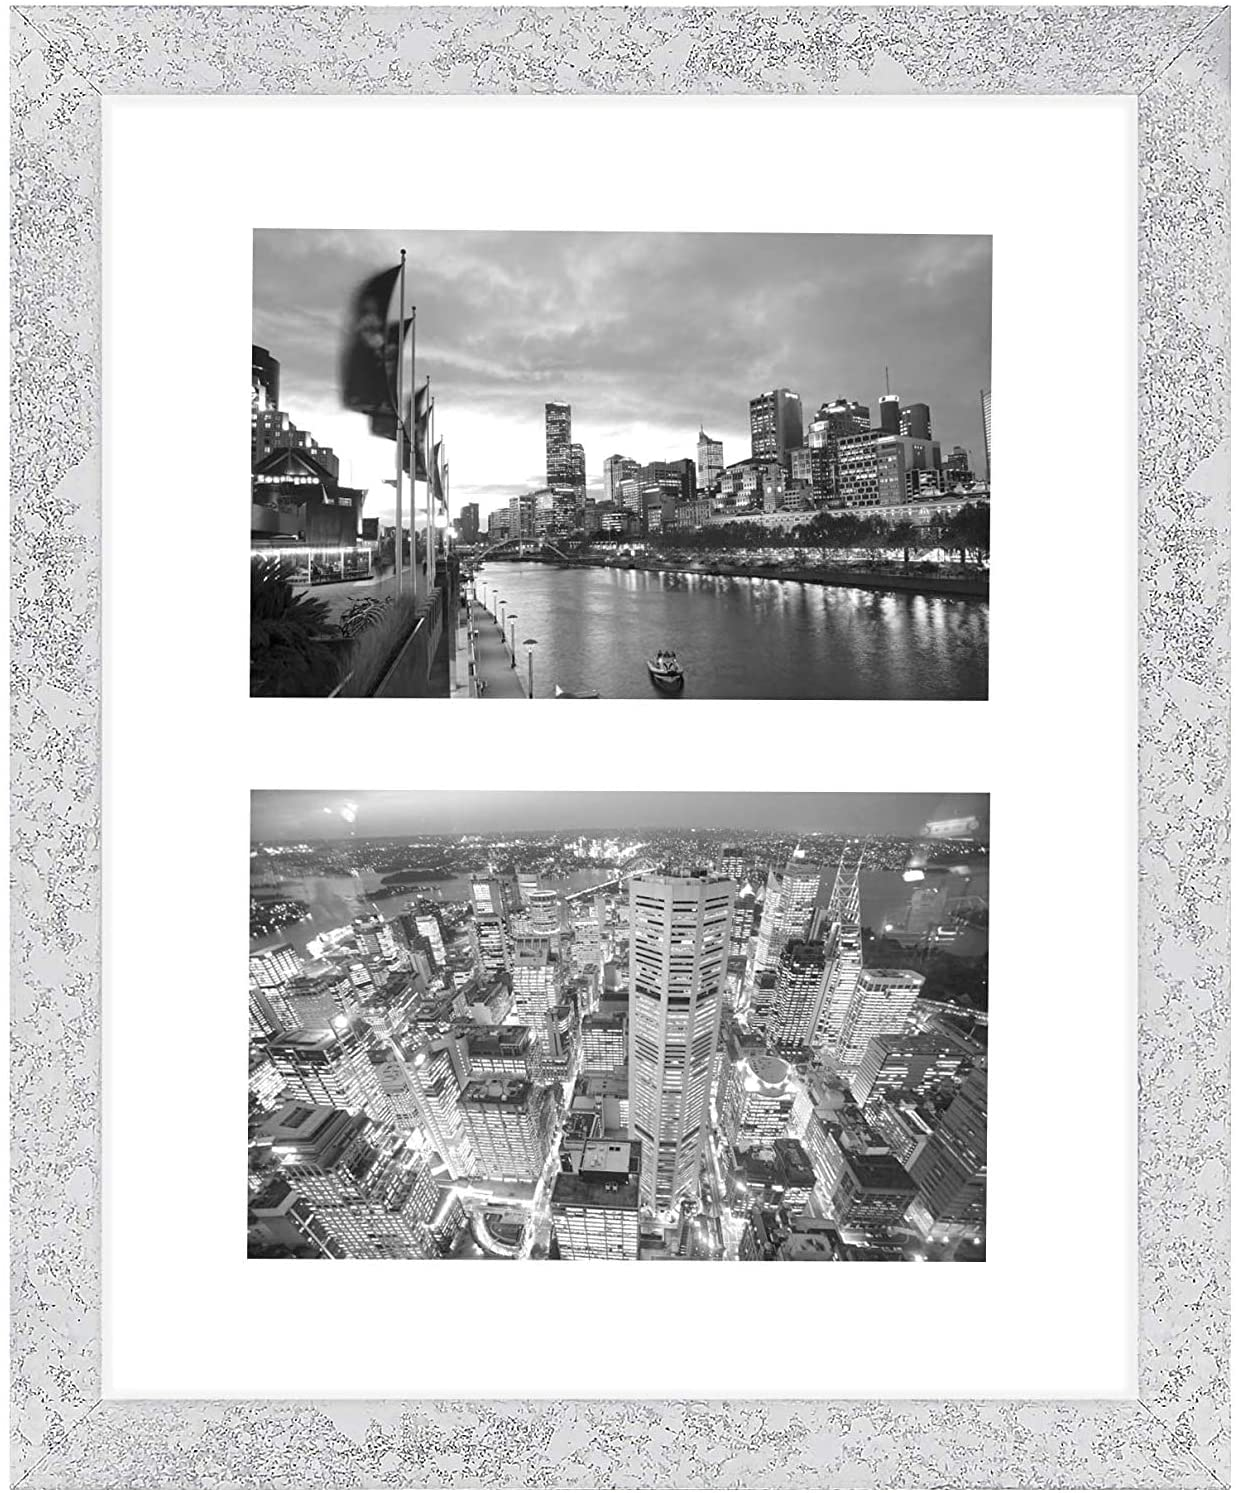 Golden State Art, 8x10 Silver Collage Picture Frame - White Mat for (2) 4x6 Pictures - Wood Molding - Easel Stand for Tabletop - D-Rings for Wall Display - Great for Homes, Offices, Events